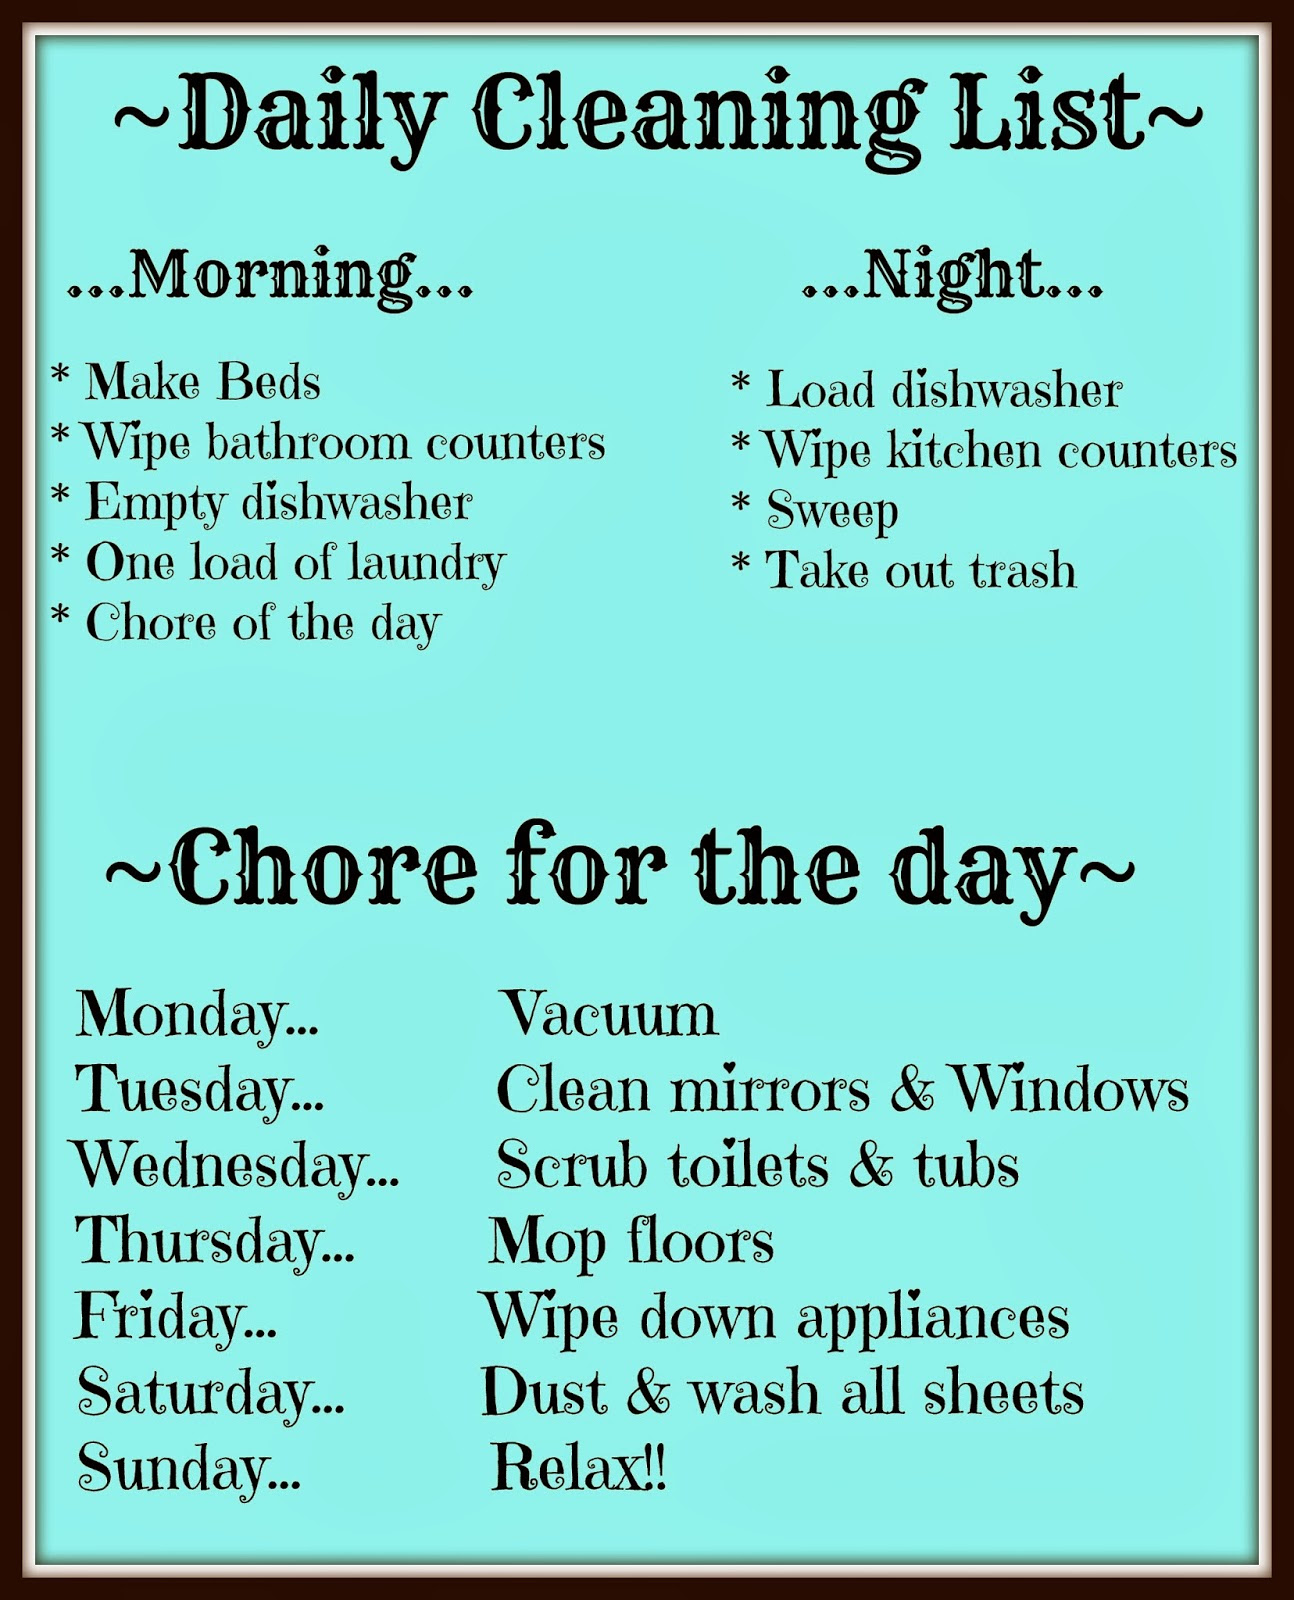 Working Mom Cleaning Schedule Printable - Apk Downloader